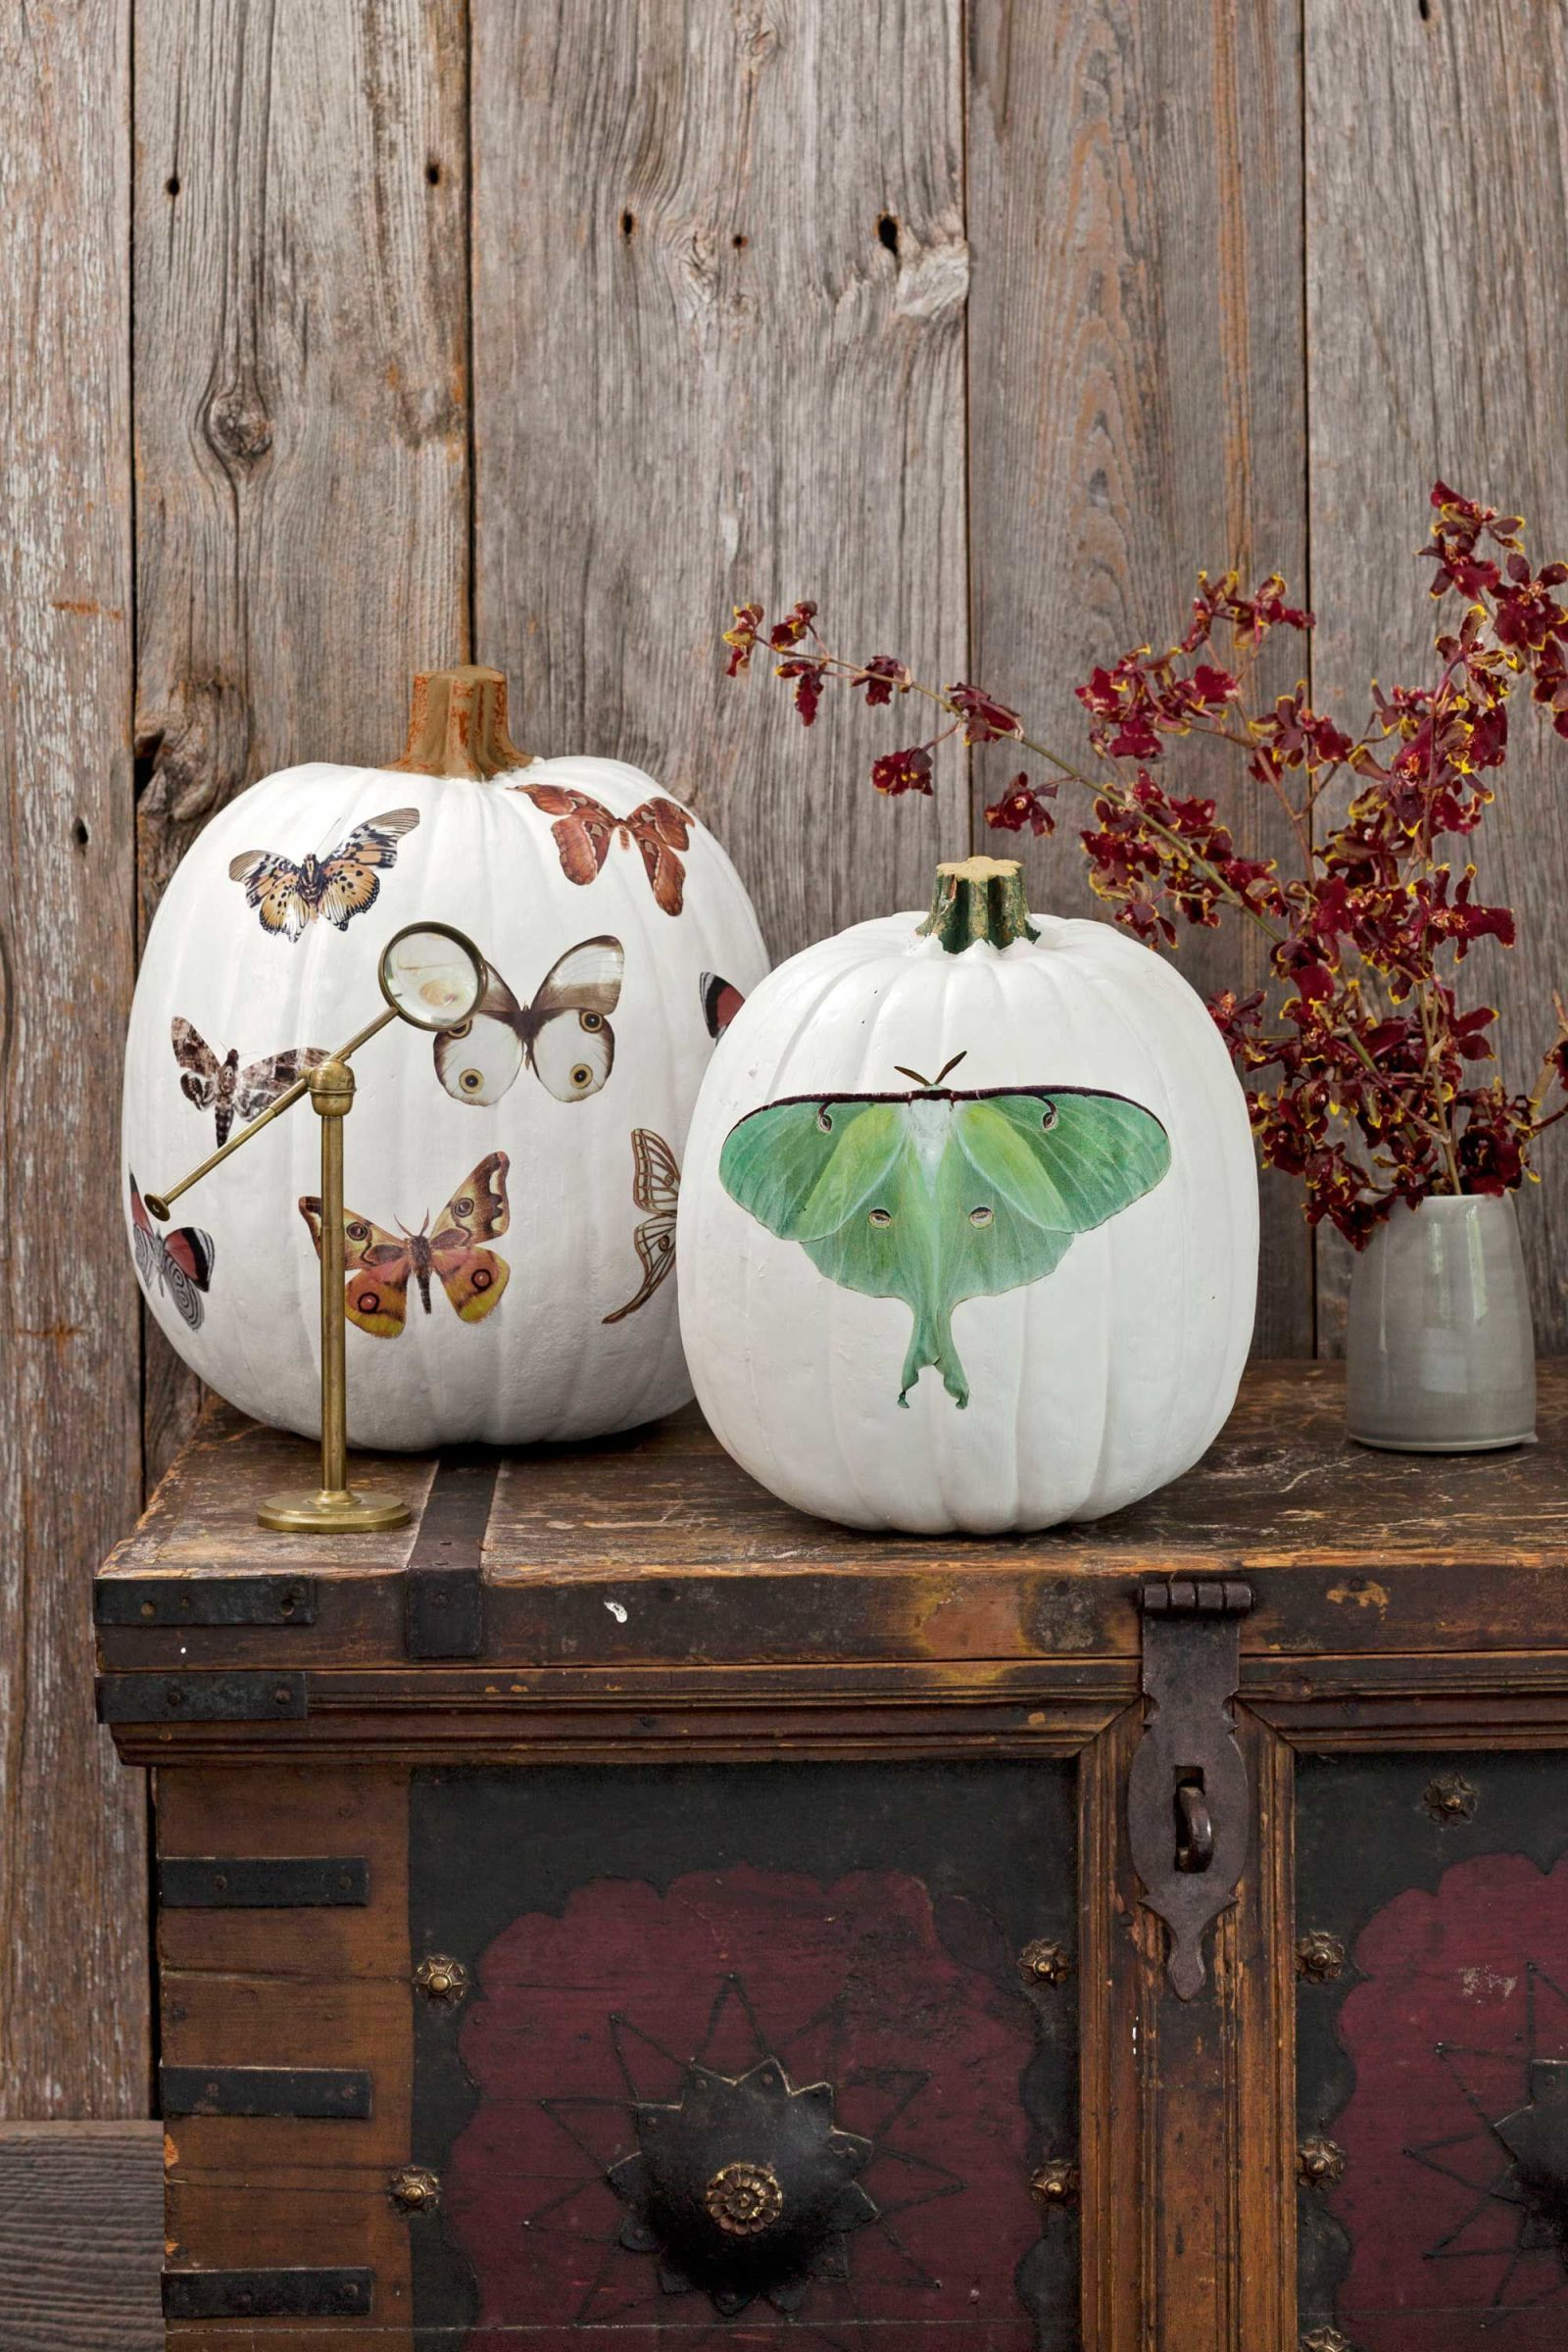 85+ New Ways to Decorate Your Halloween Pumpkins Moth, Pumpkin - Decorating For Halloween